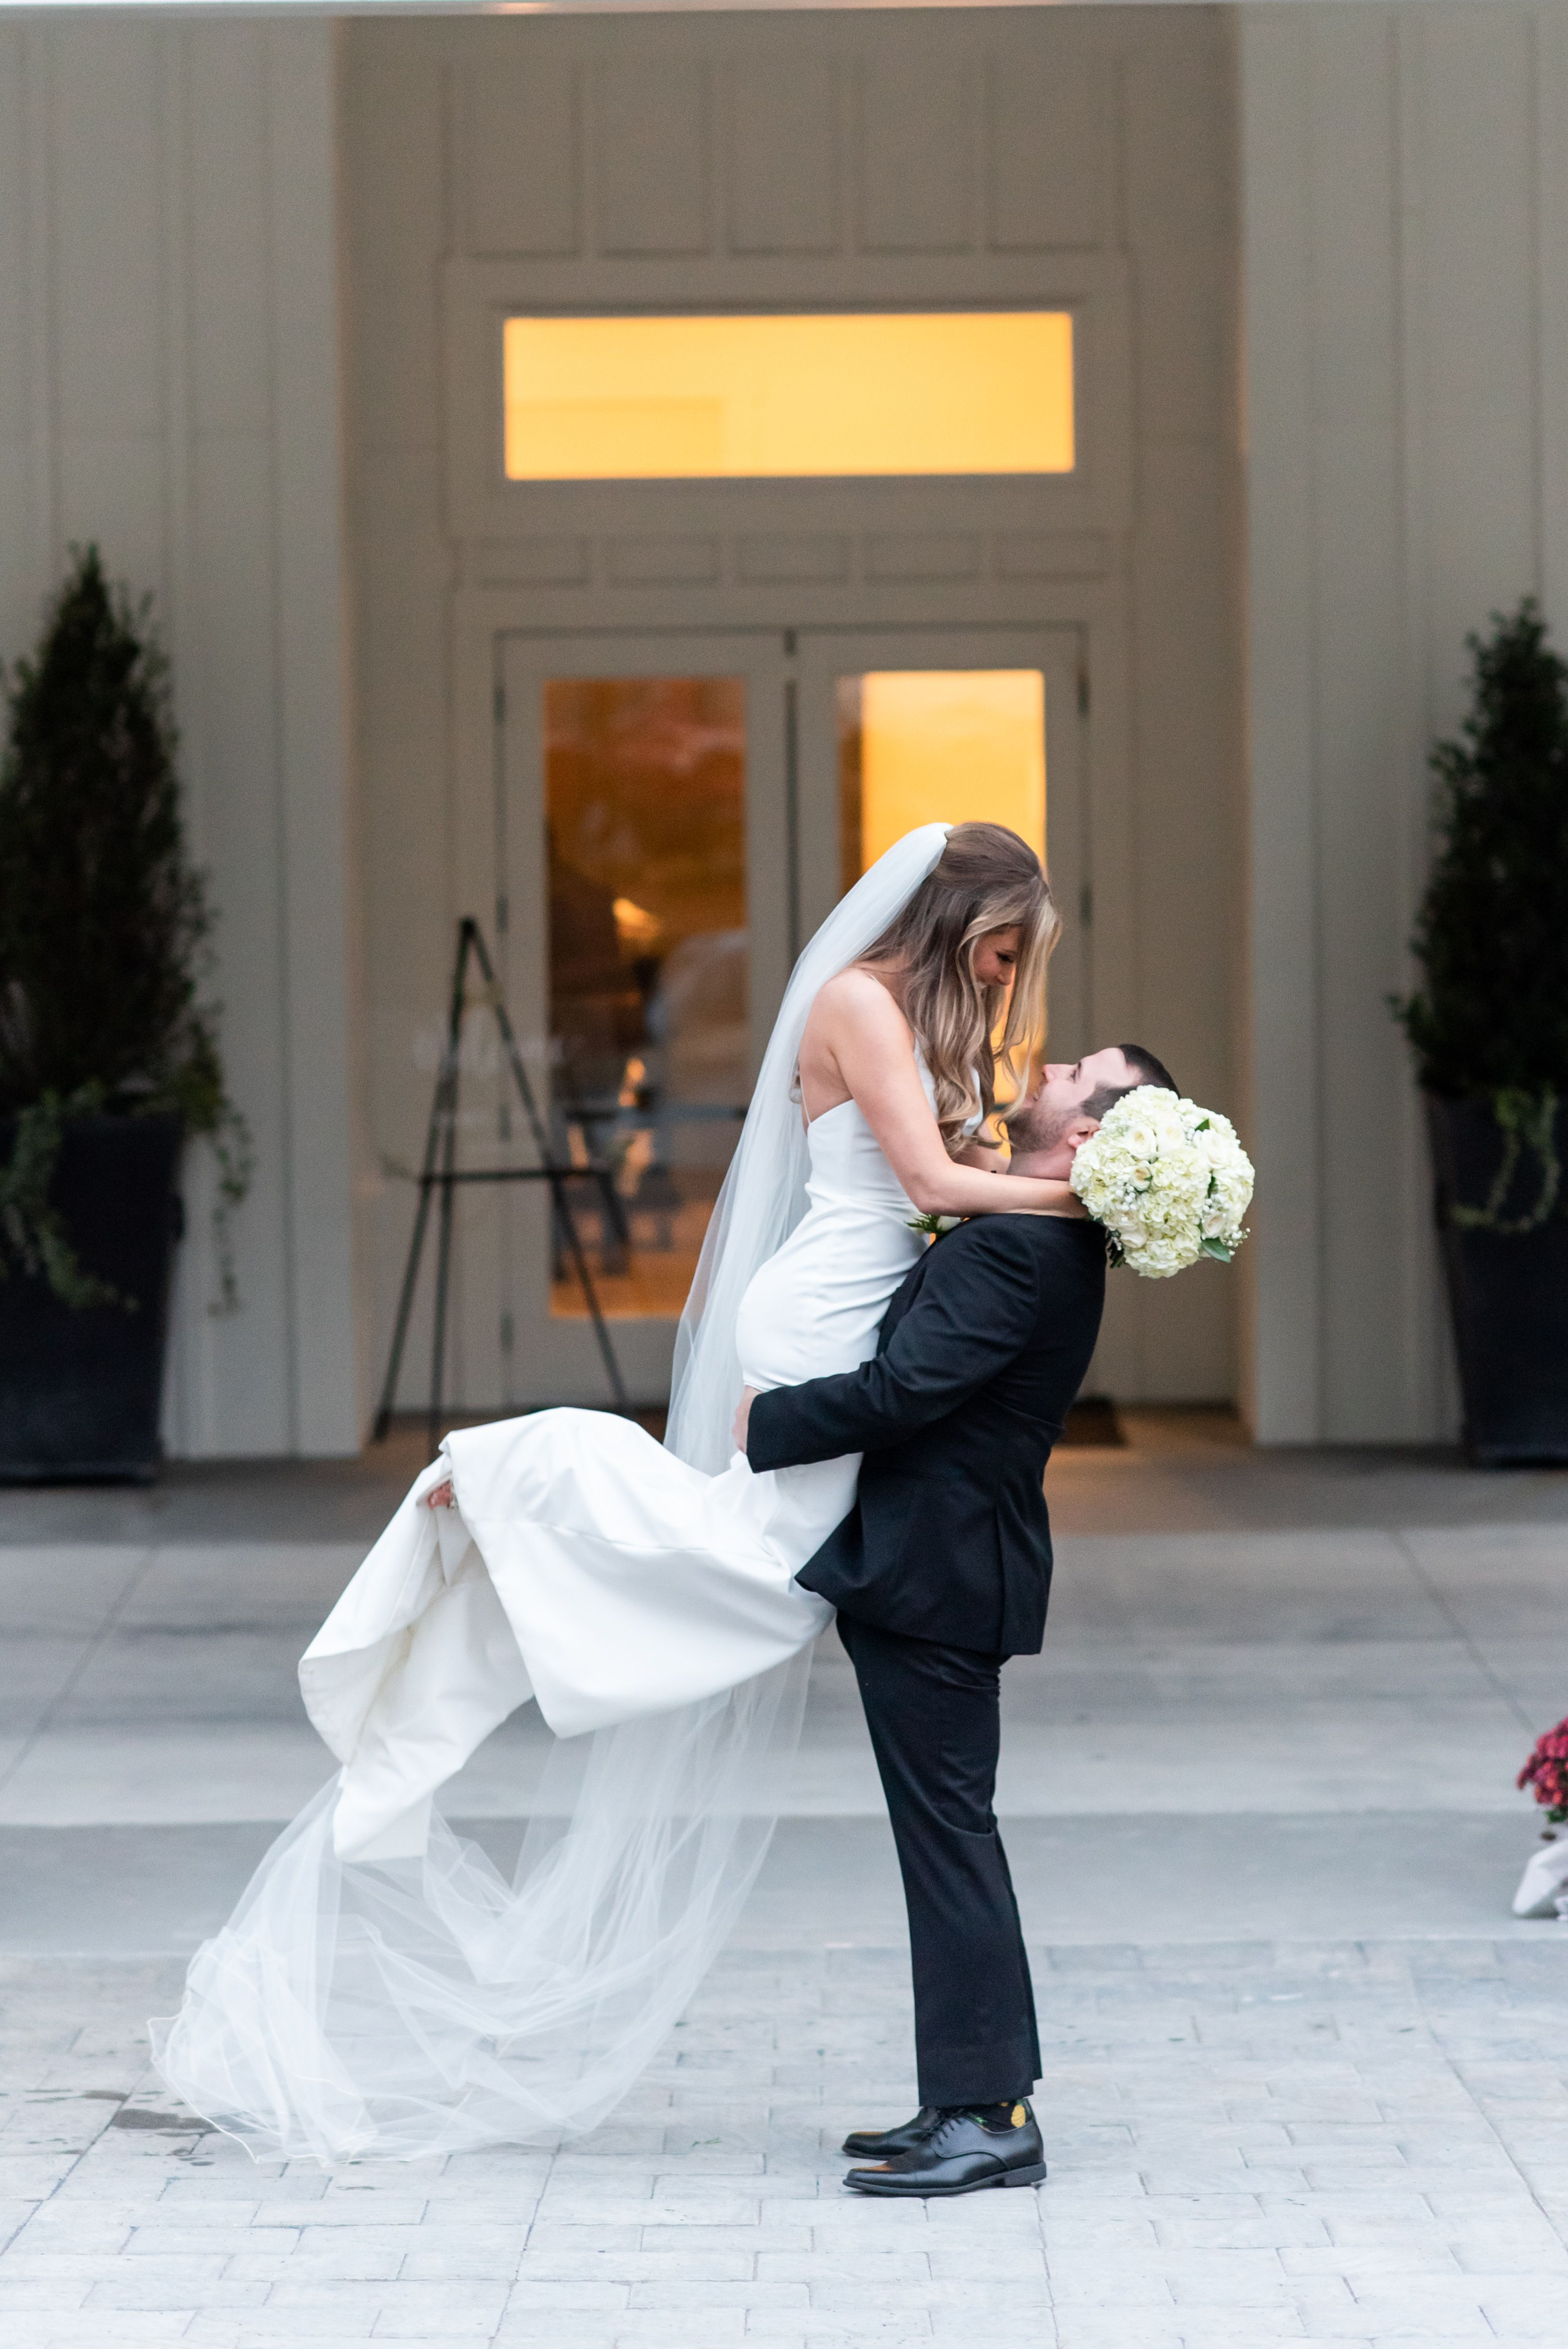 Musthave wedding day photo; bride & groom; just married